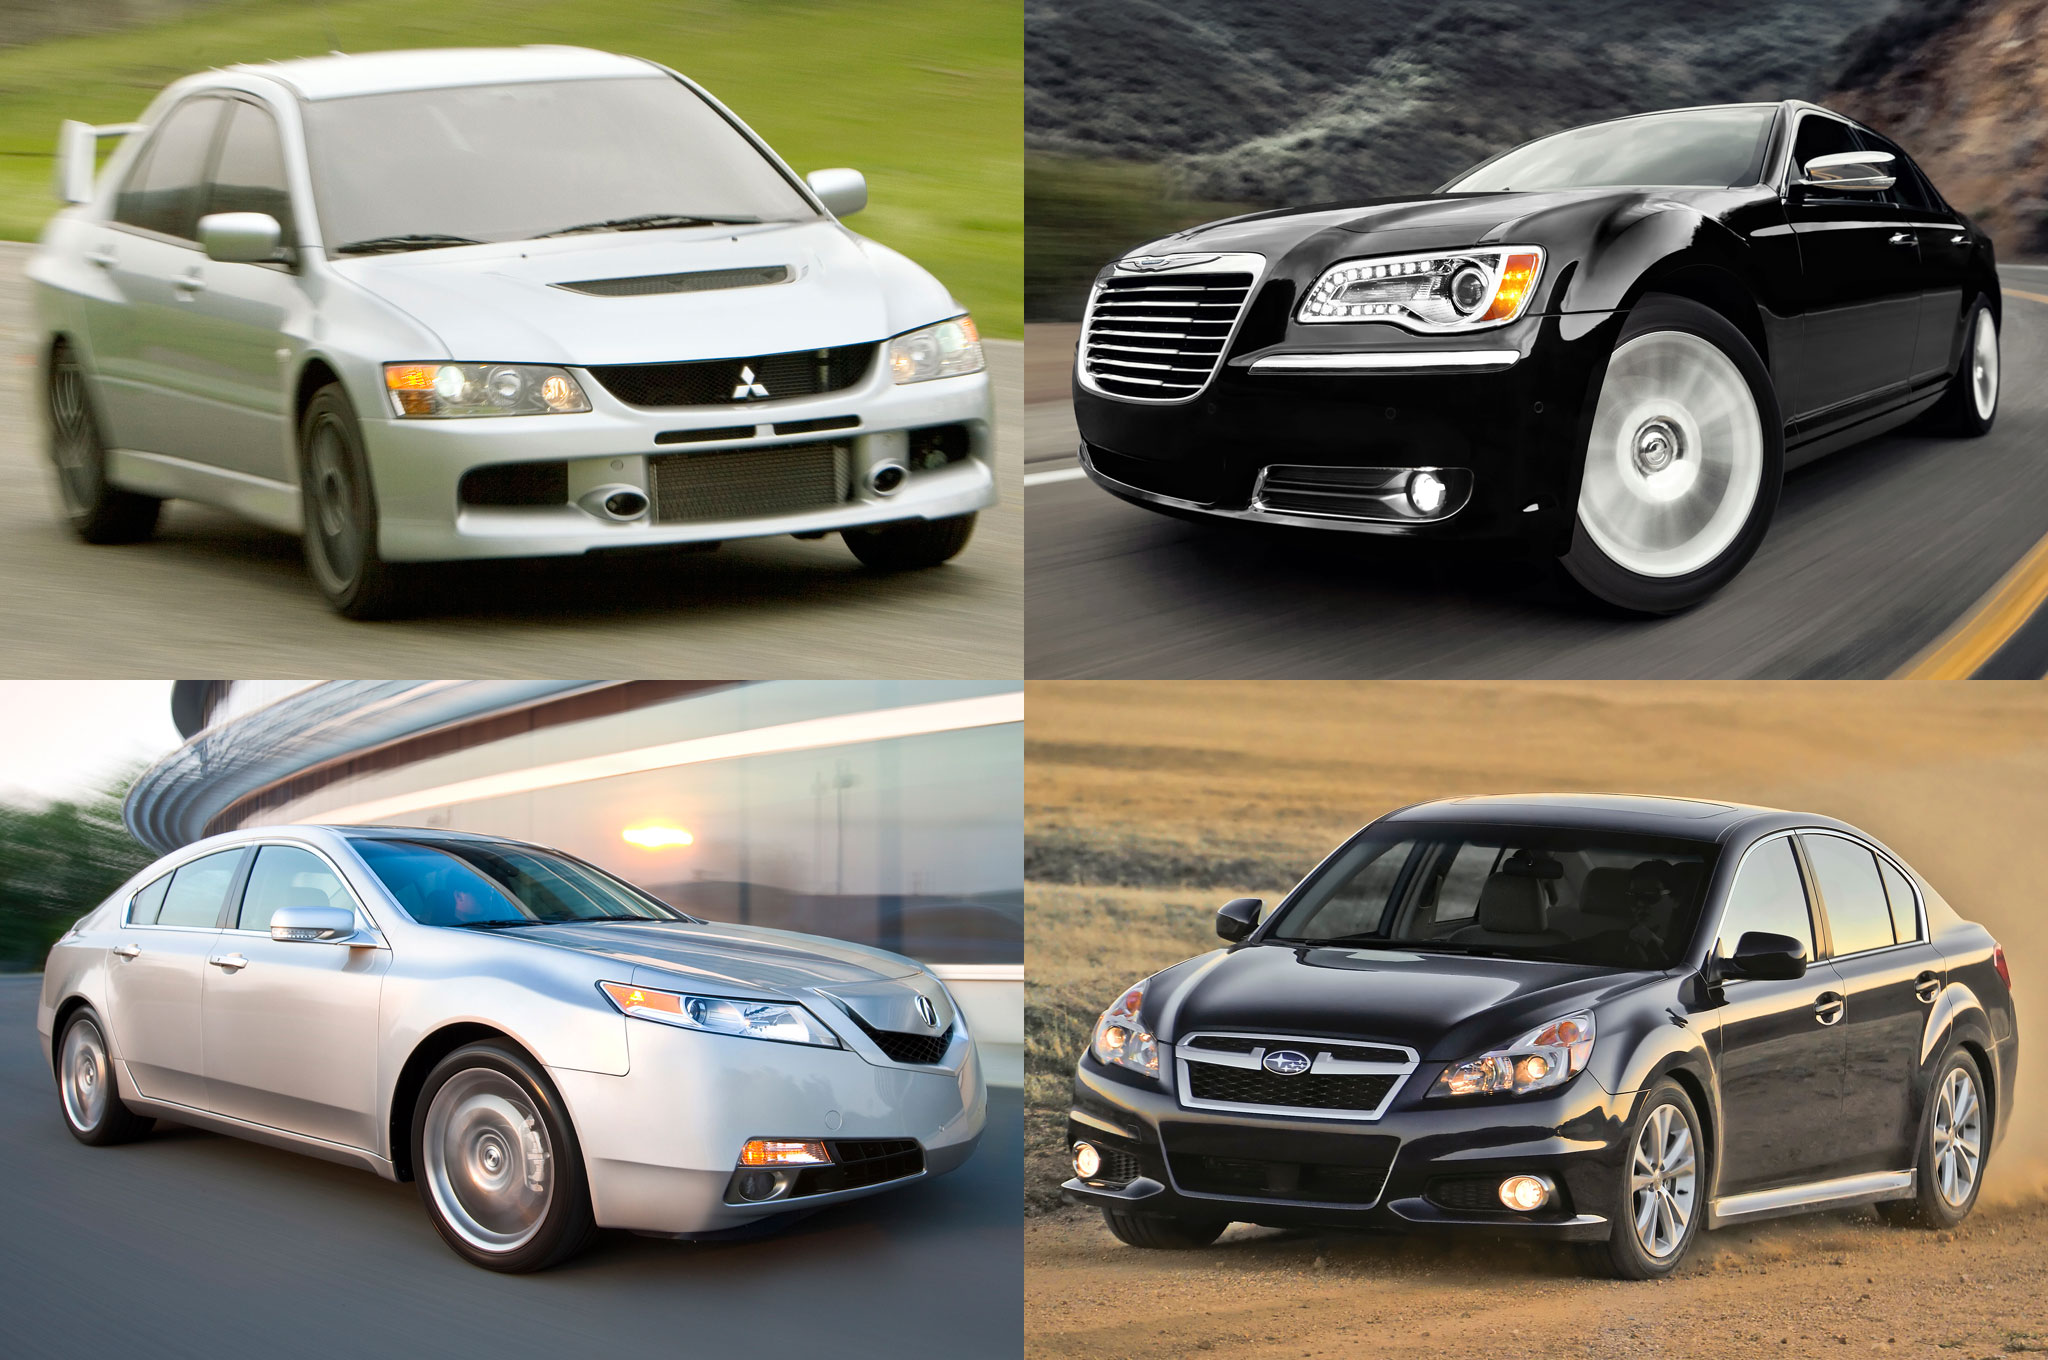 Best Used Cars Under 15000 Fresh totd Pick A New or Used Awd Four Door Under $30 000 Motor Trend